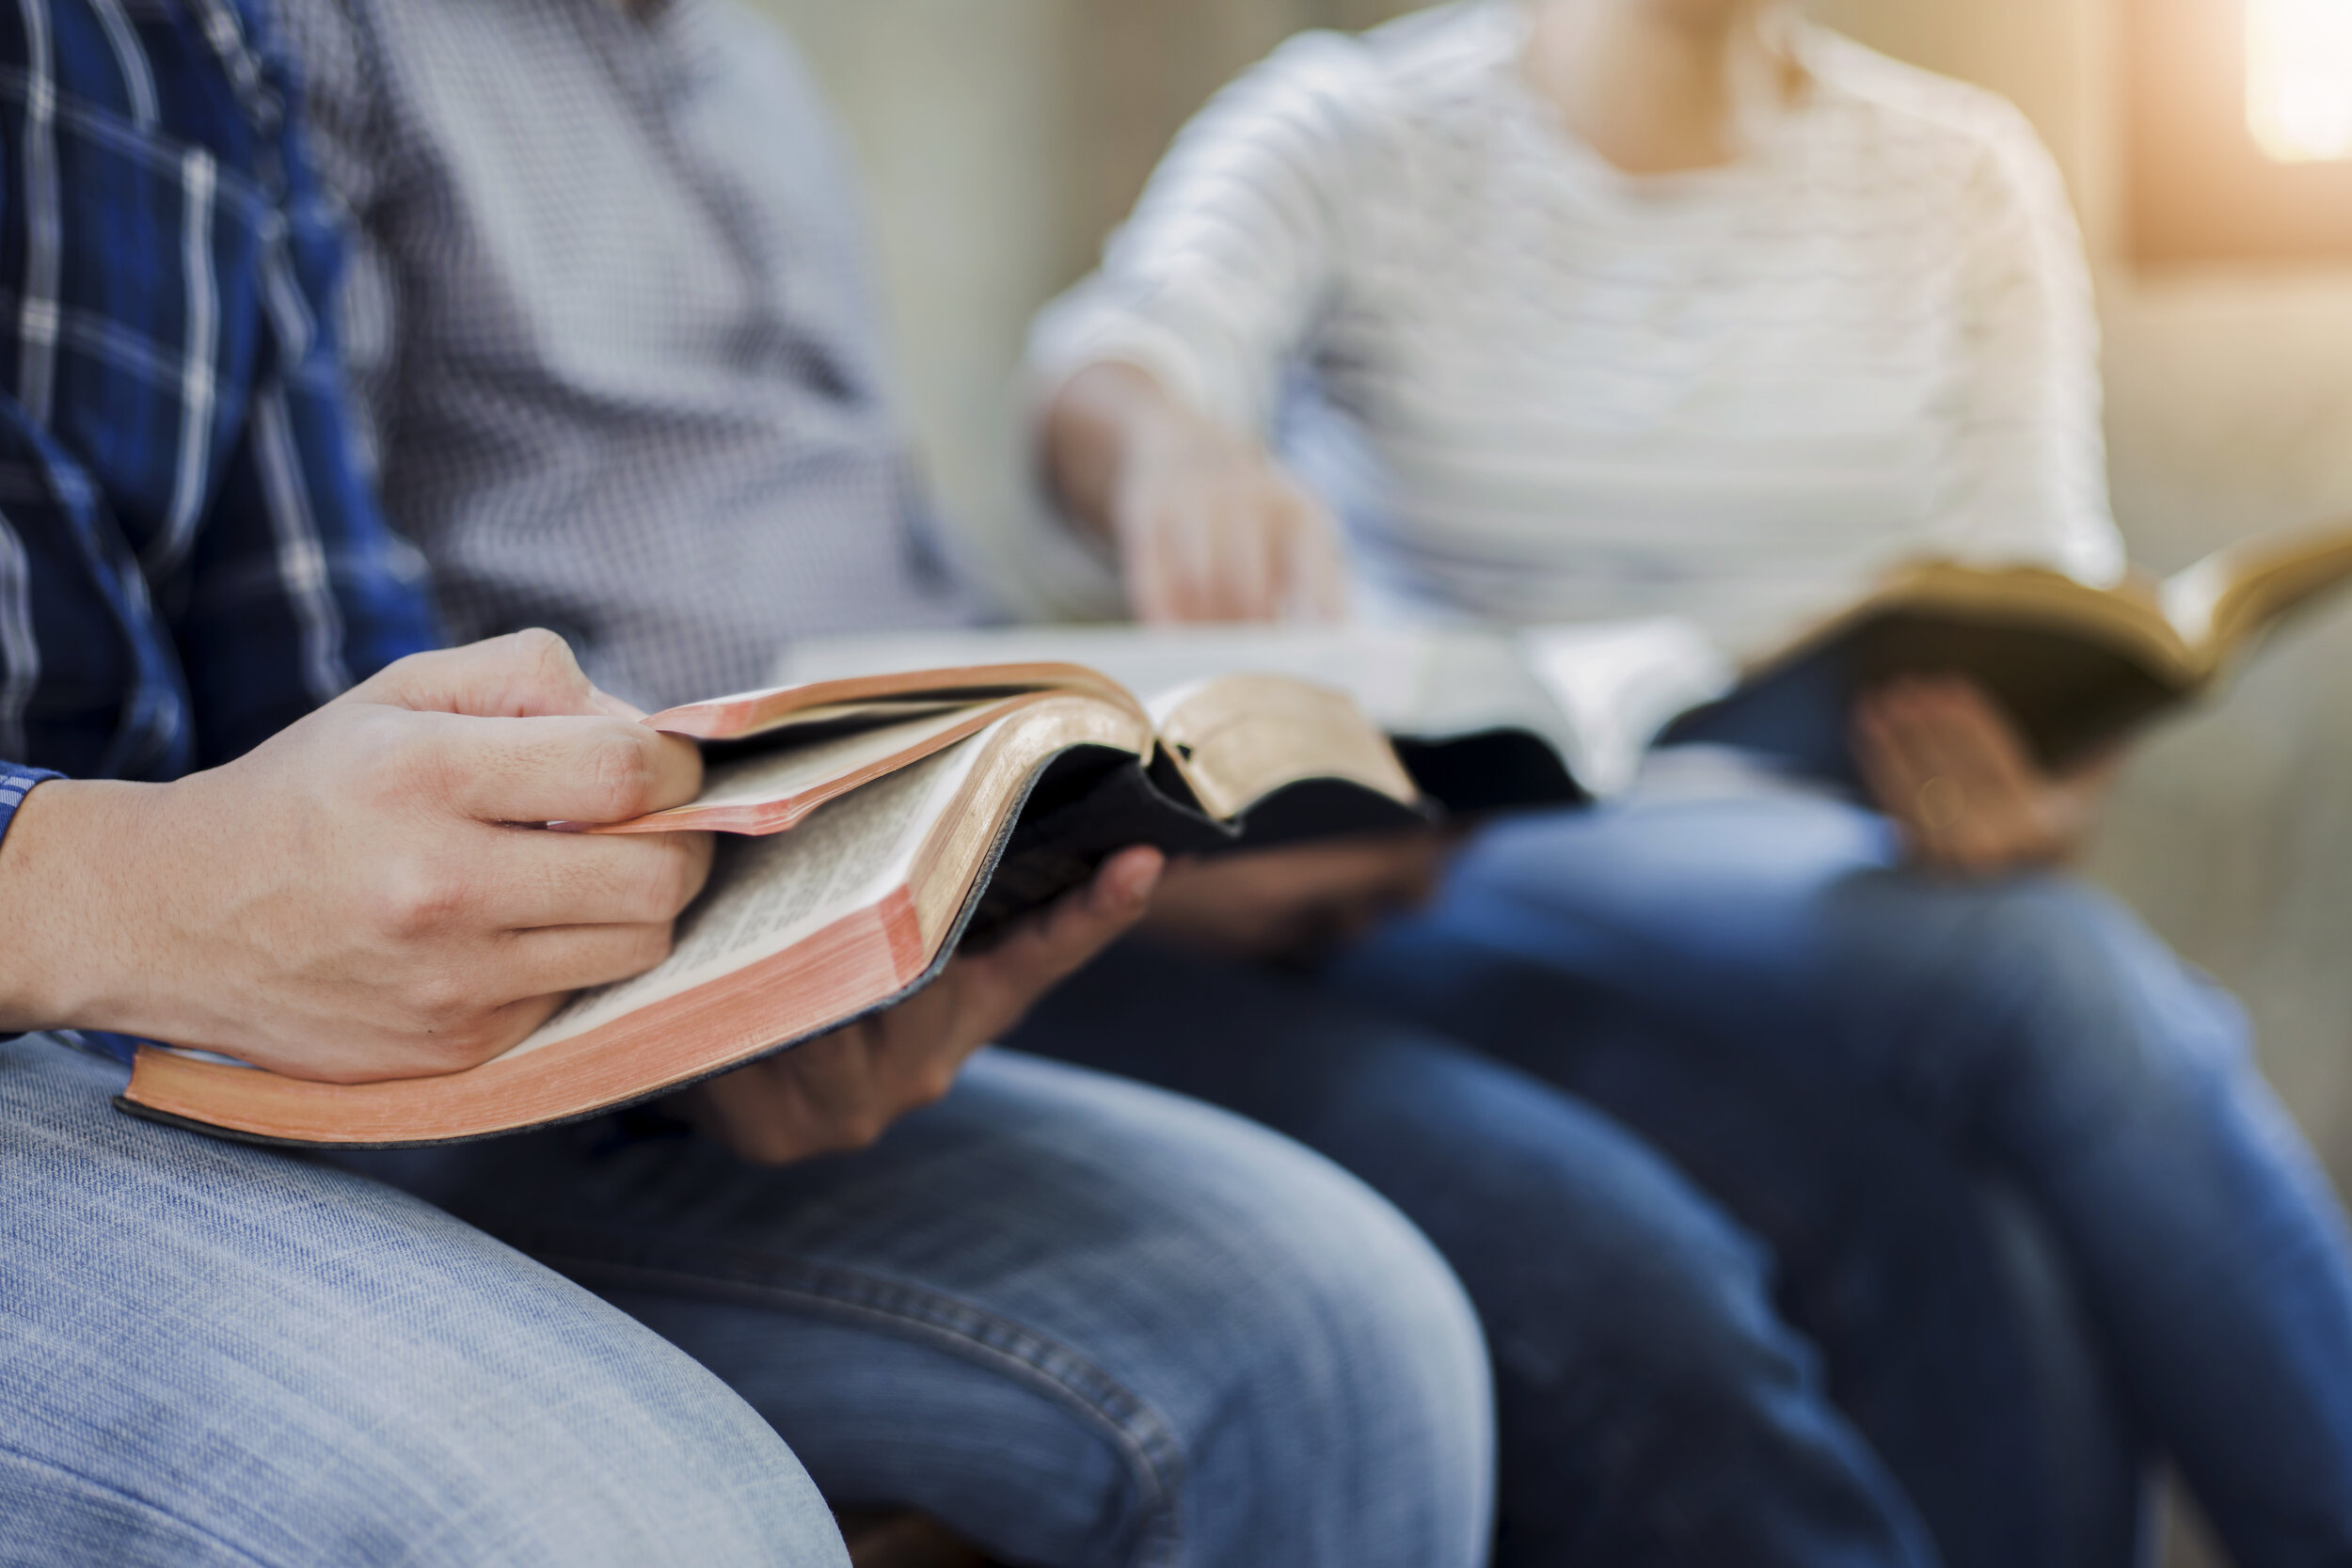 Christian friends group reading and study bible together in home or Sunday school at church with window light